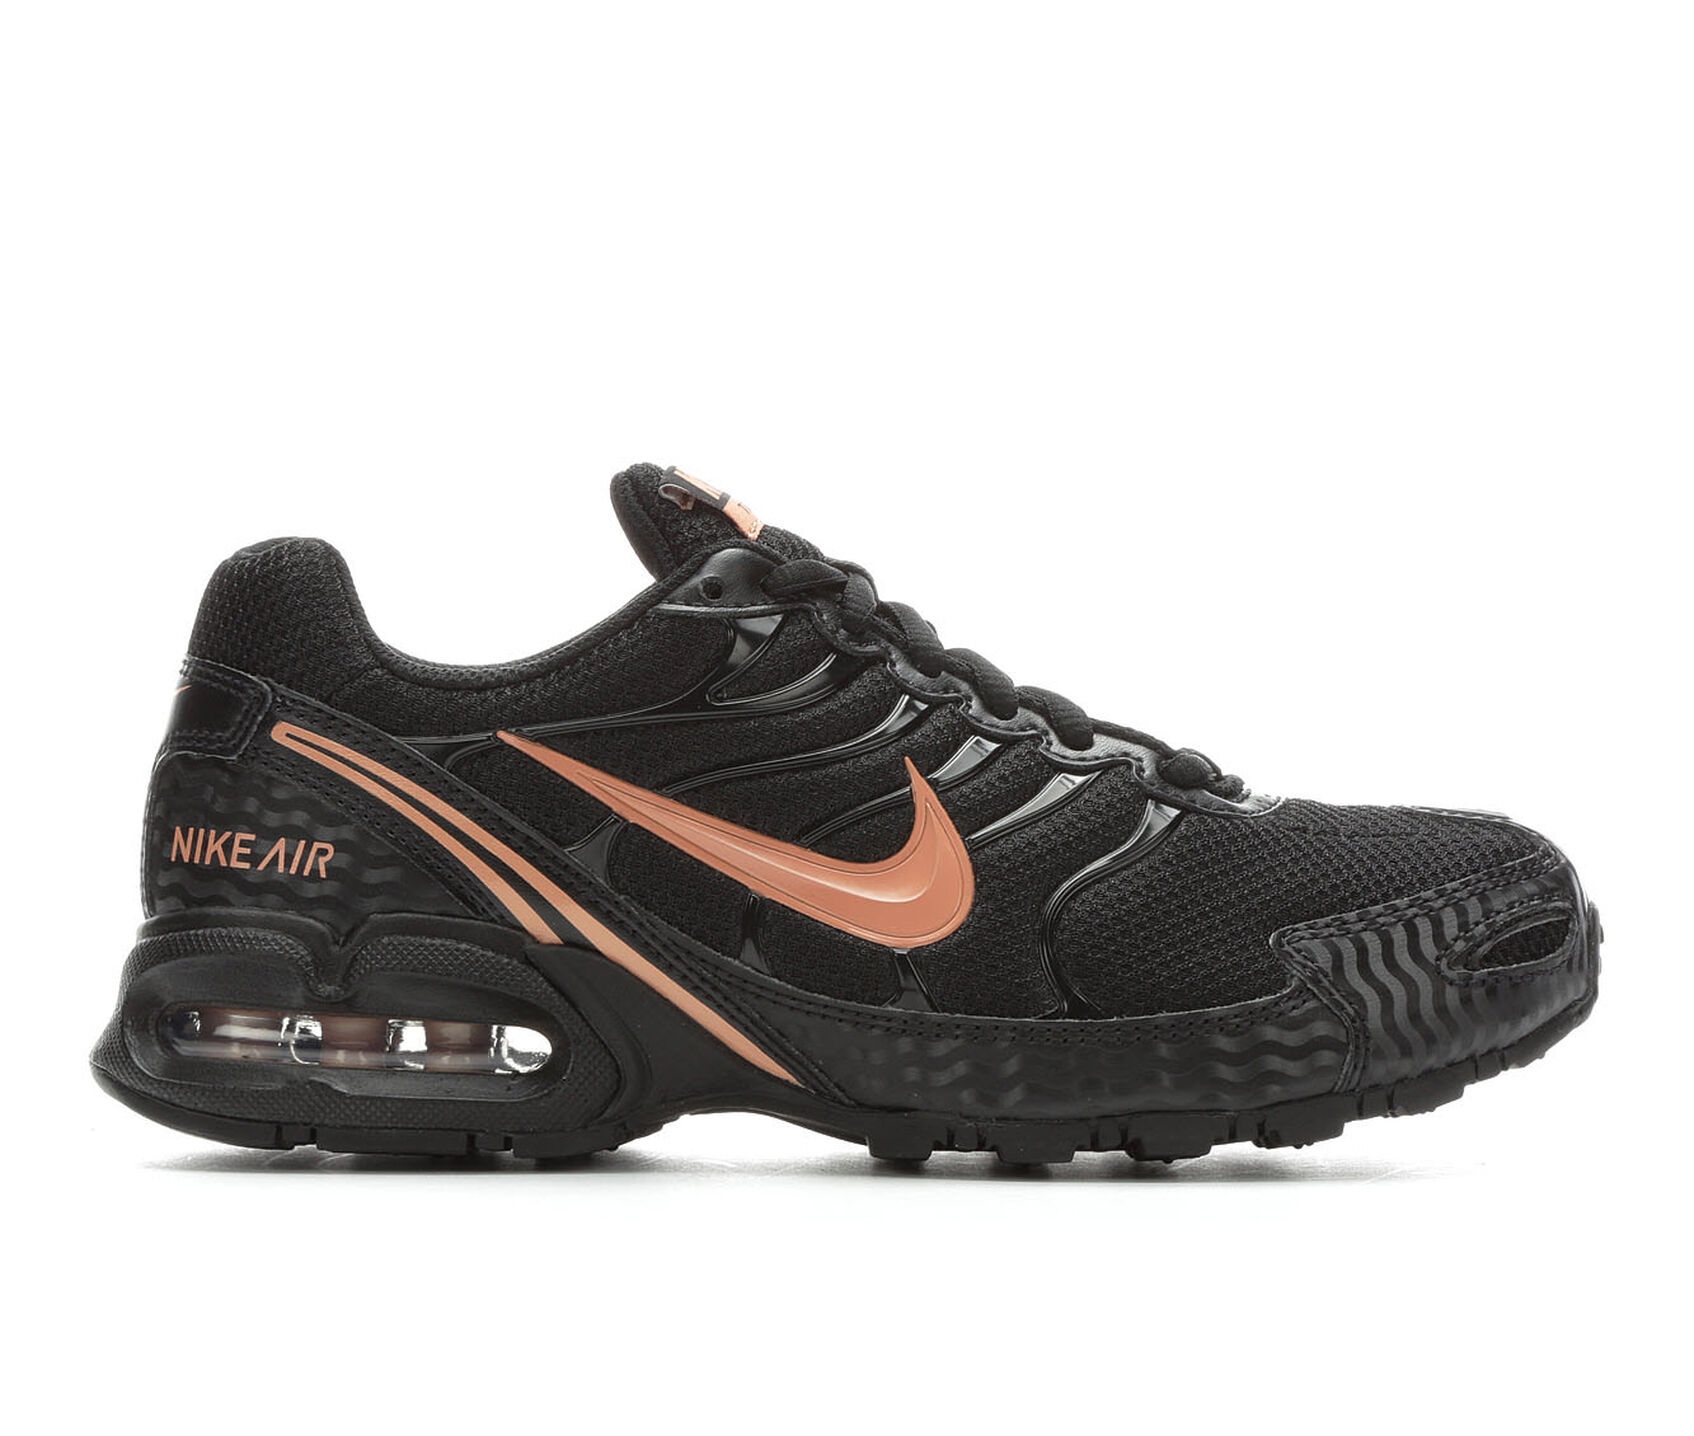 015bcca2aa6 ... Nike Air Max Torch 4 Running Shoes. Previous